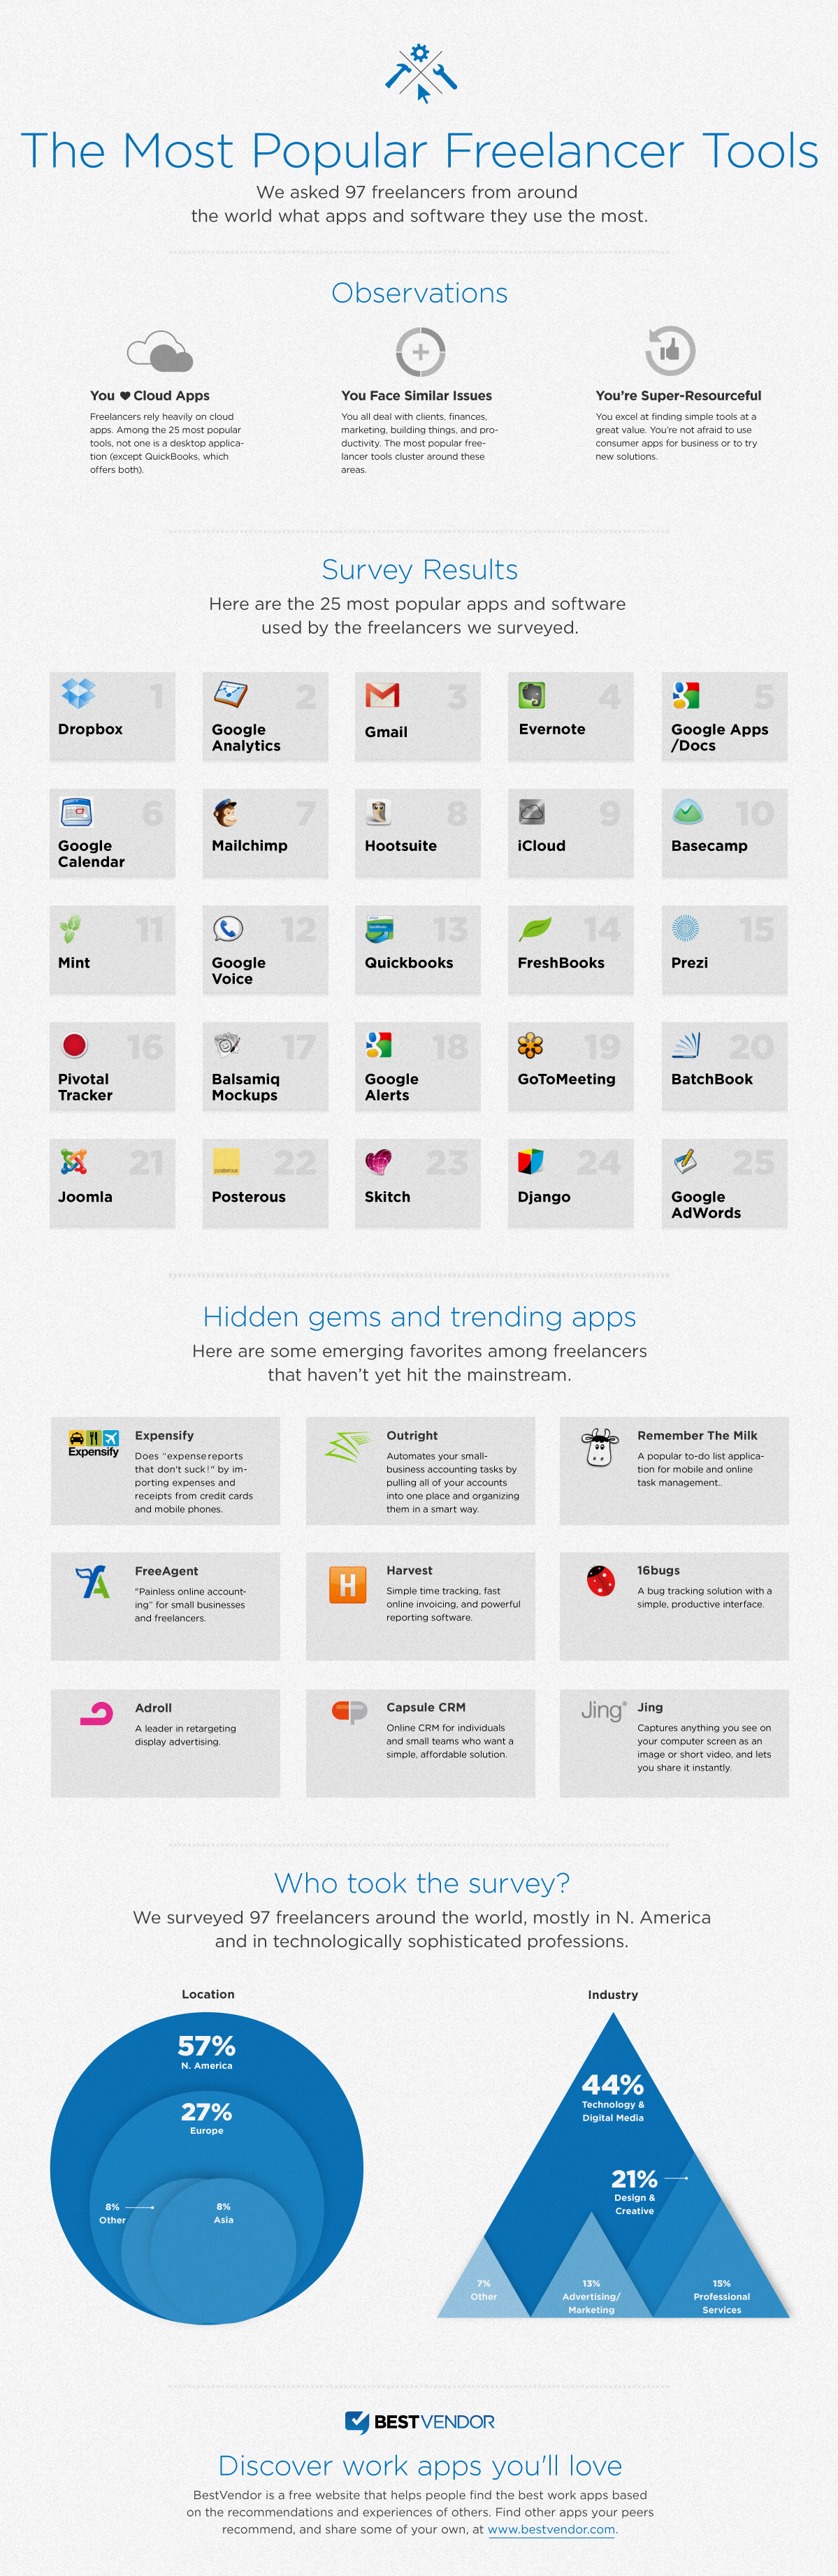 INFOGRAPHIC: Top Online Tools for Entrepreneurs and Freelancers